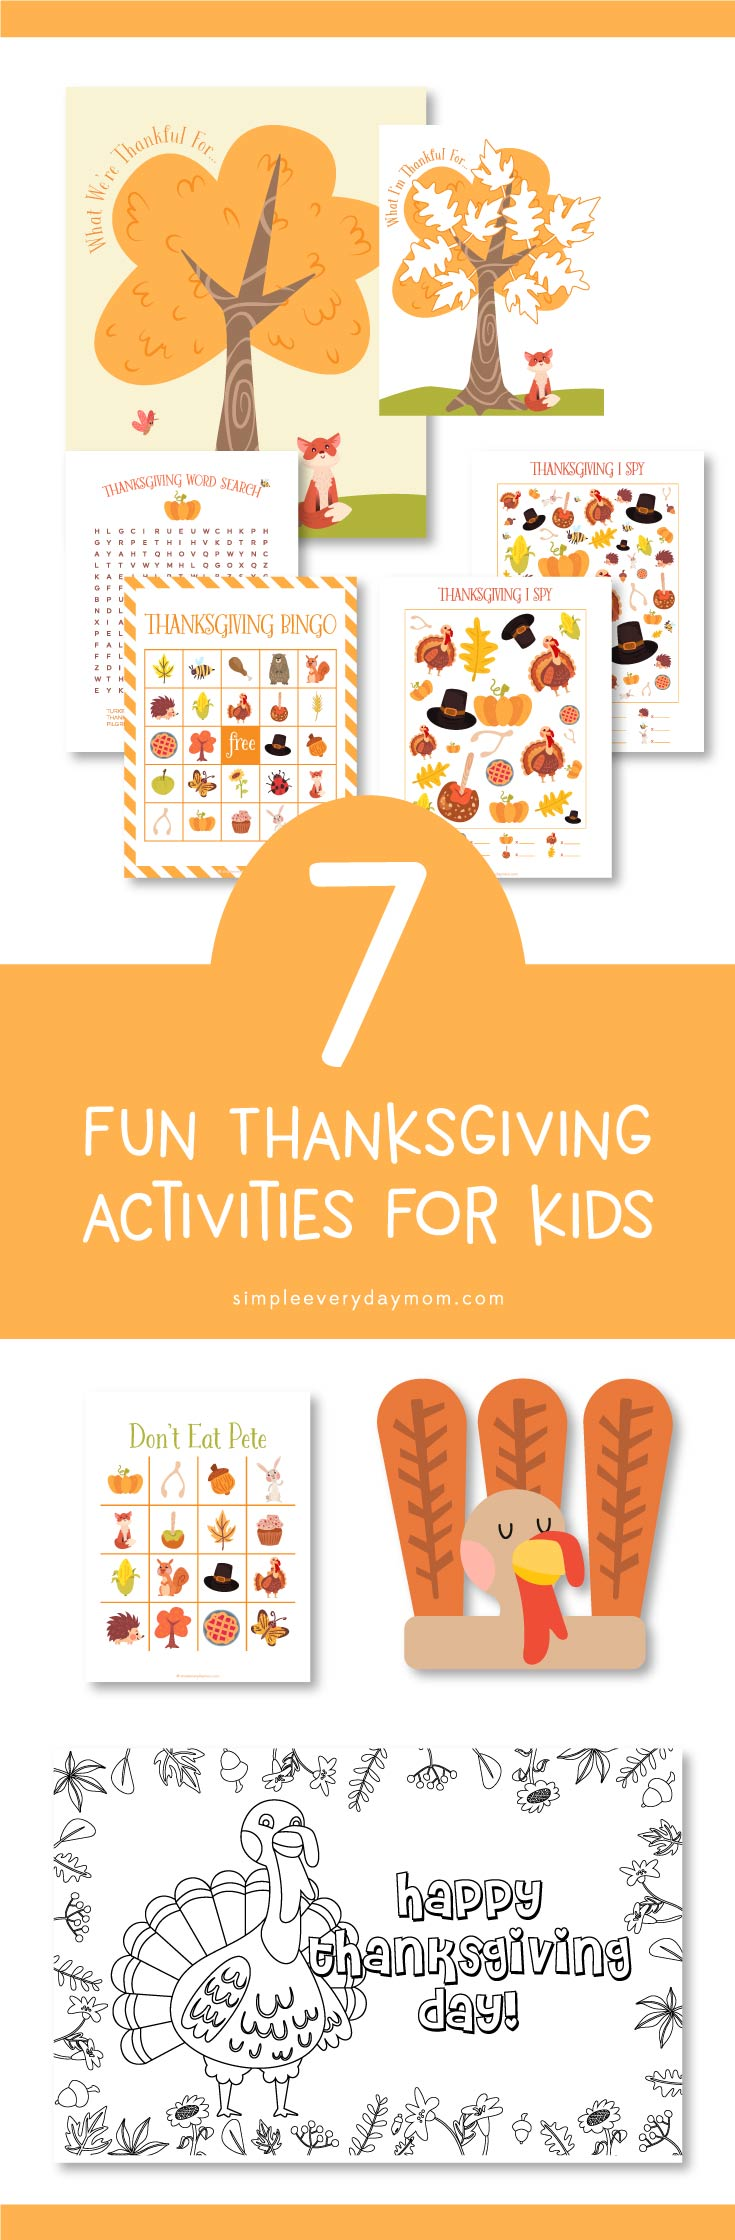 Create some new family traditions and spend quality time together doing these fun Thanksgiving activities for kids. Download the entire printable pack for games, easy crafts, coloring and more!